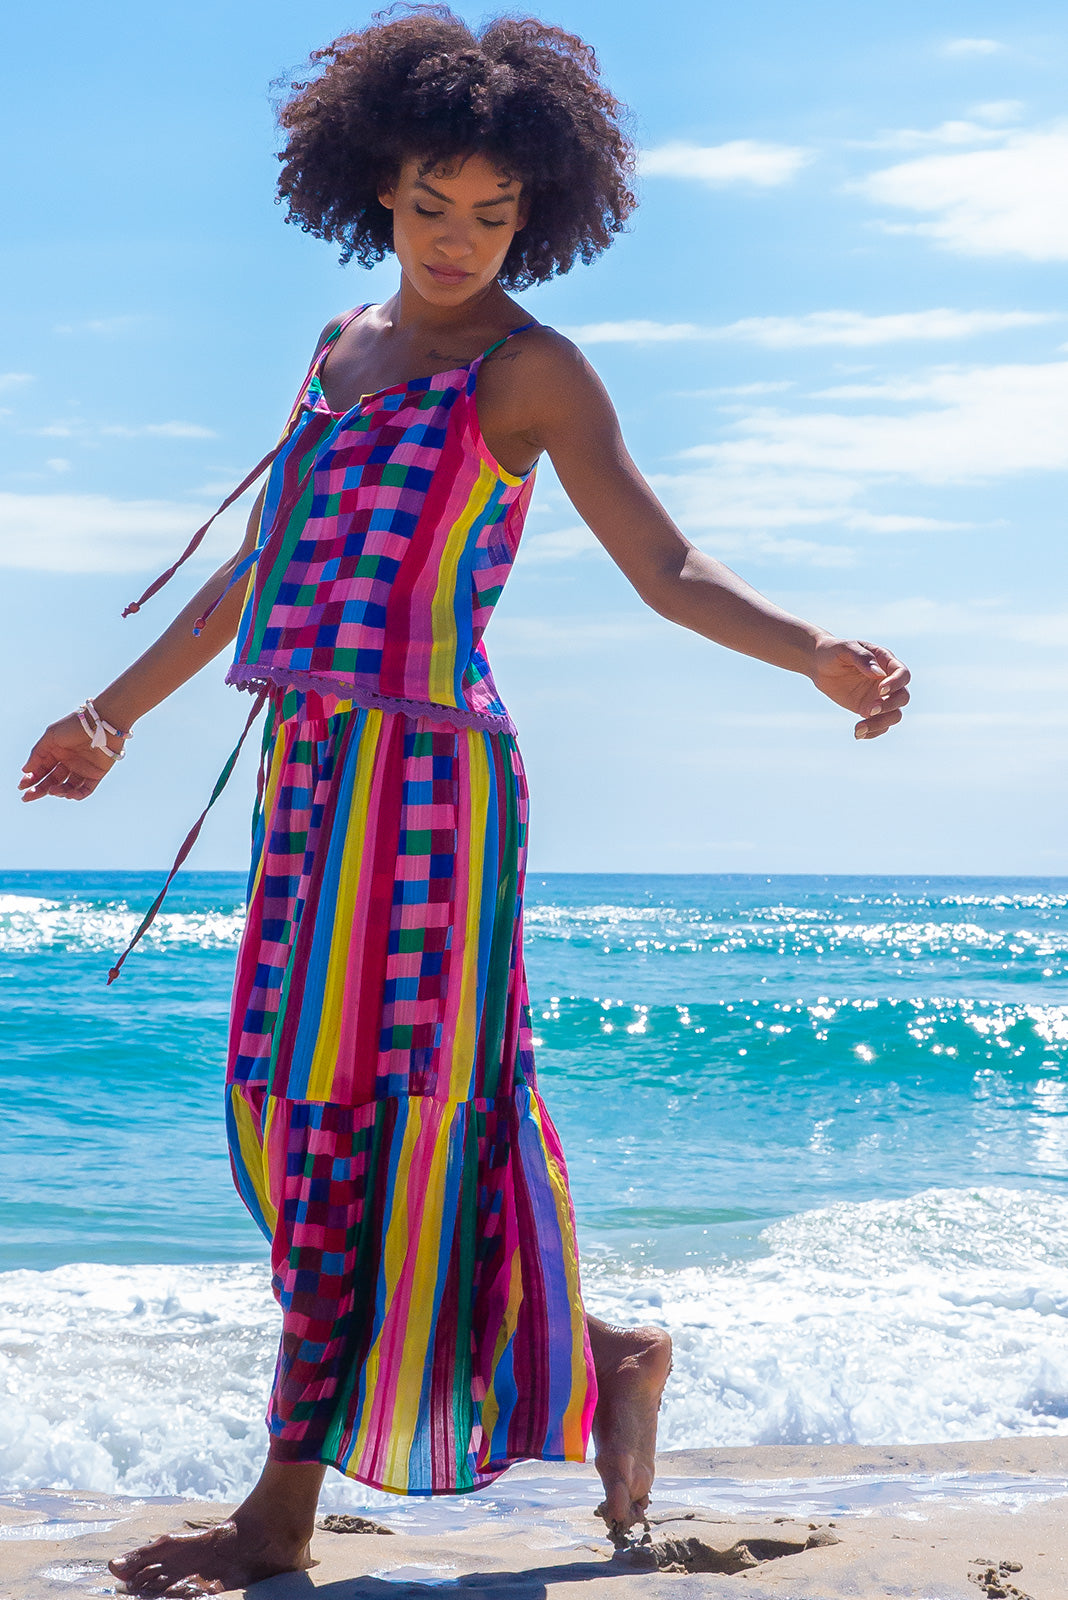 The Valencia Carnivale Maxi Skirt is a vibrant and fun skirt featuring elasticated waistband with decorative tie, side pockets and Woven fabric 95% cotton 5% polyester in vibrant multi coloured check and stripe print with a lurex thread running through.